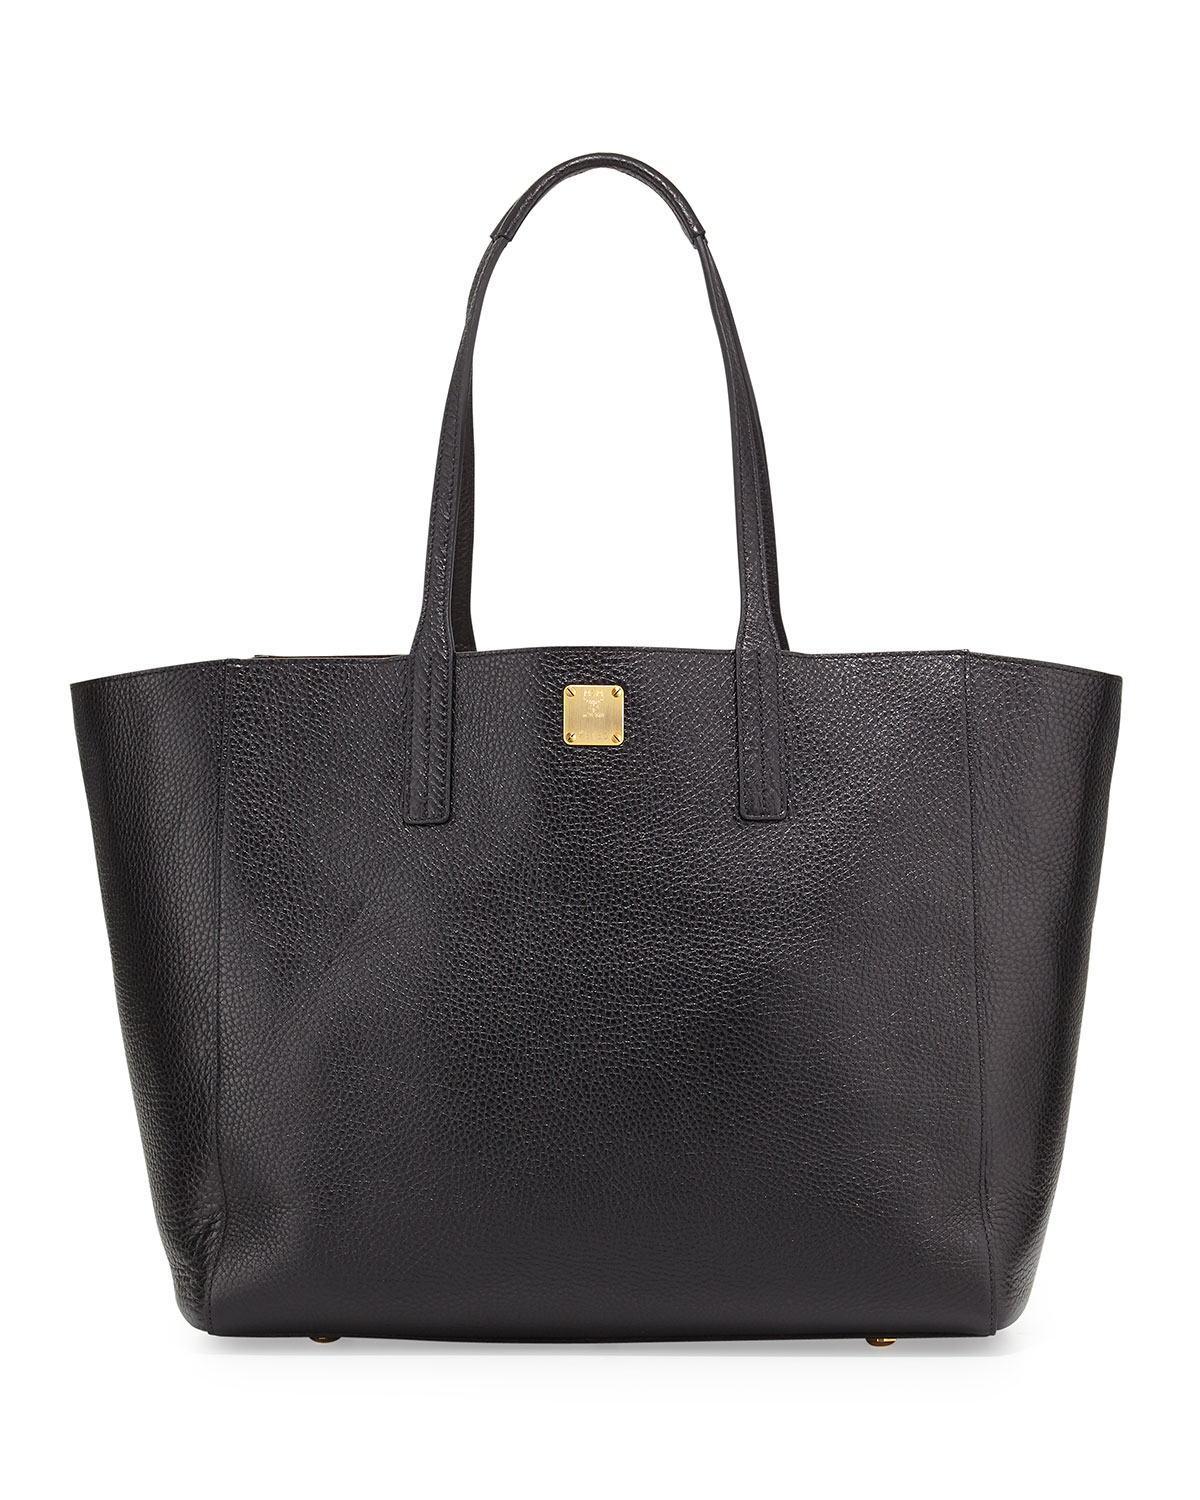 Mcm Shopper Project Reversible Leather Tote Bag in Black ...